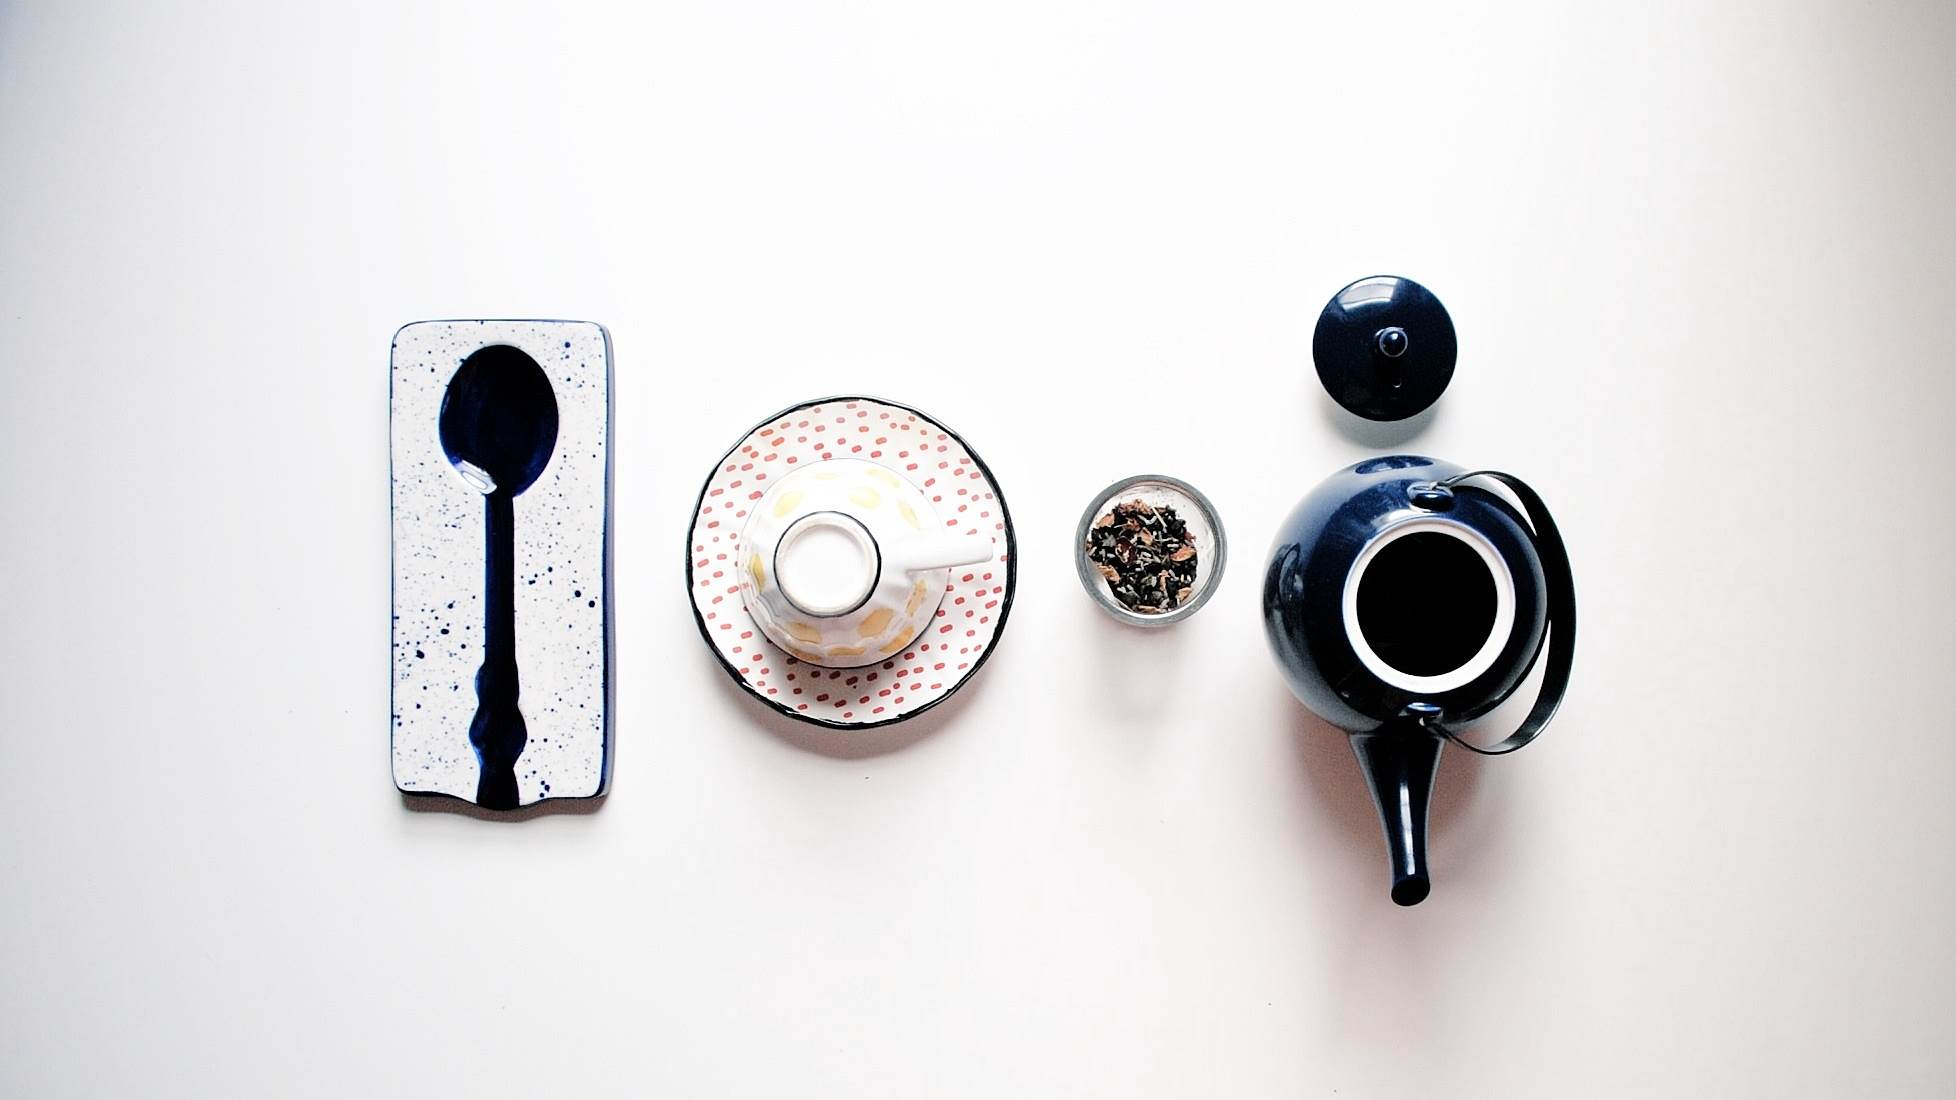 Each night, it's tea time for me.